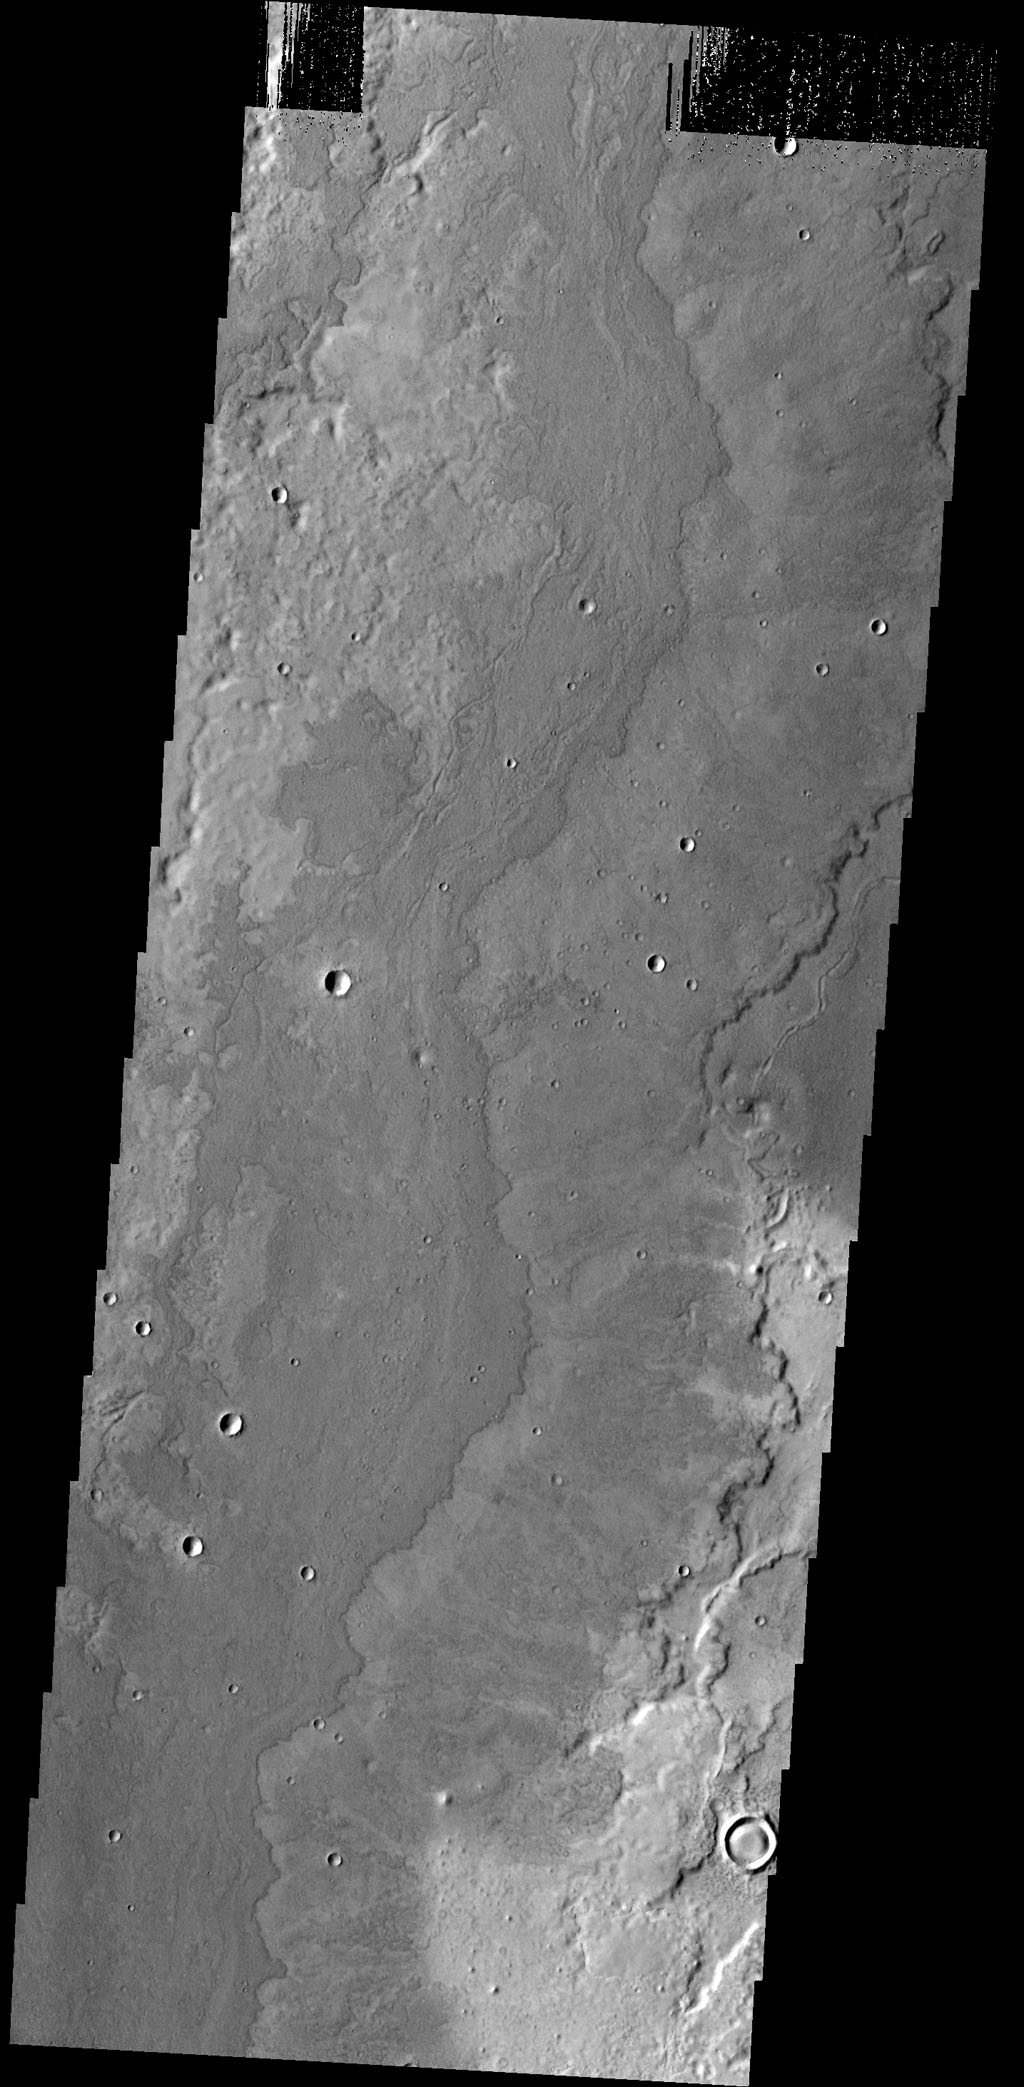 The lava flows in this image captured by NASA's 2001 Mars Odyssey spacecraft are located SE of Adams Crater.